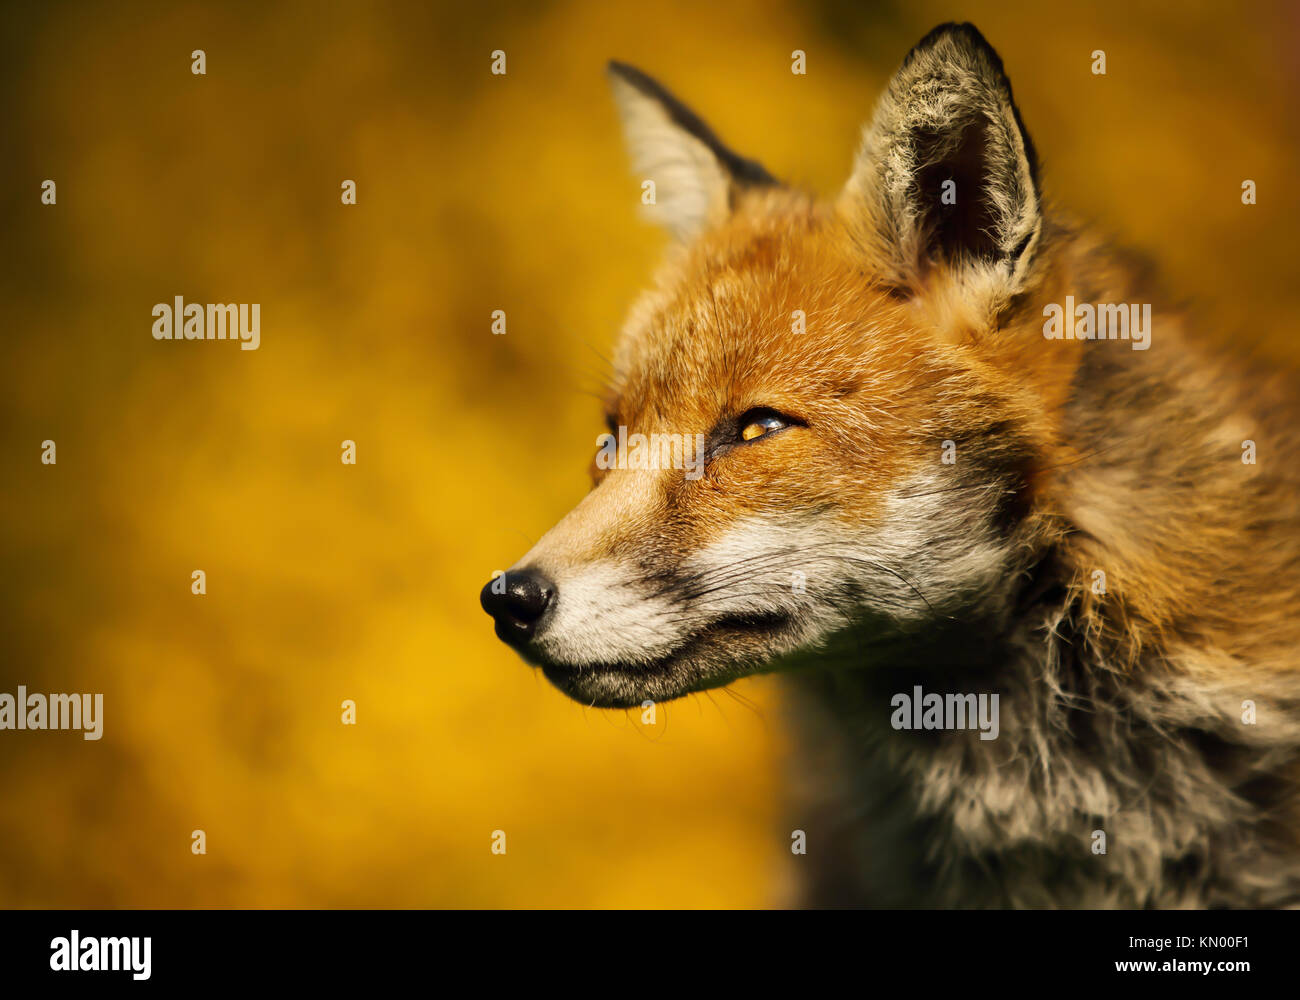 Isolated close up of an adult red fox portrait against colorful background, UK - Stock Image